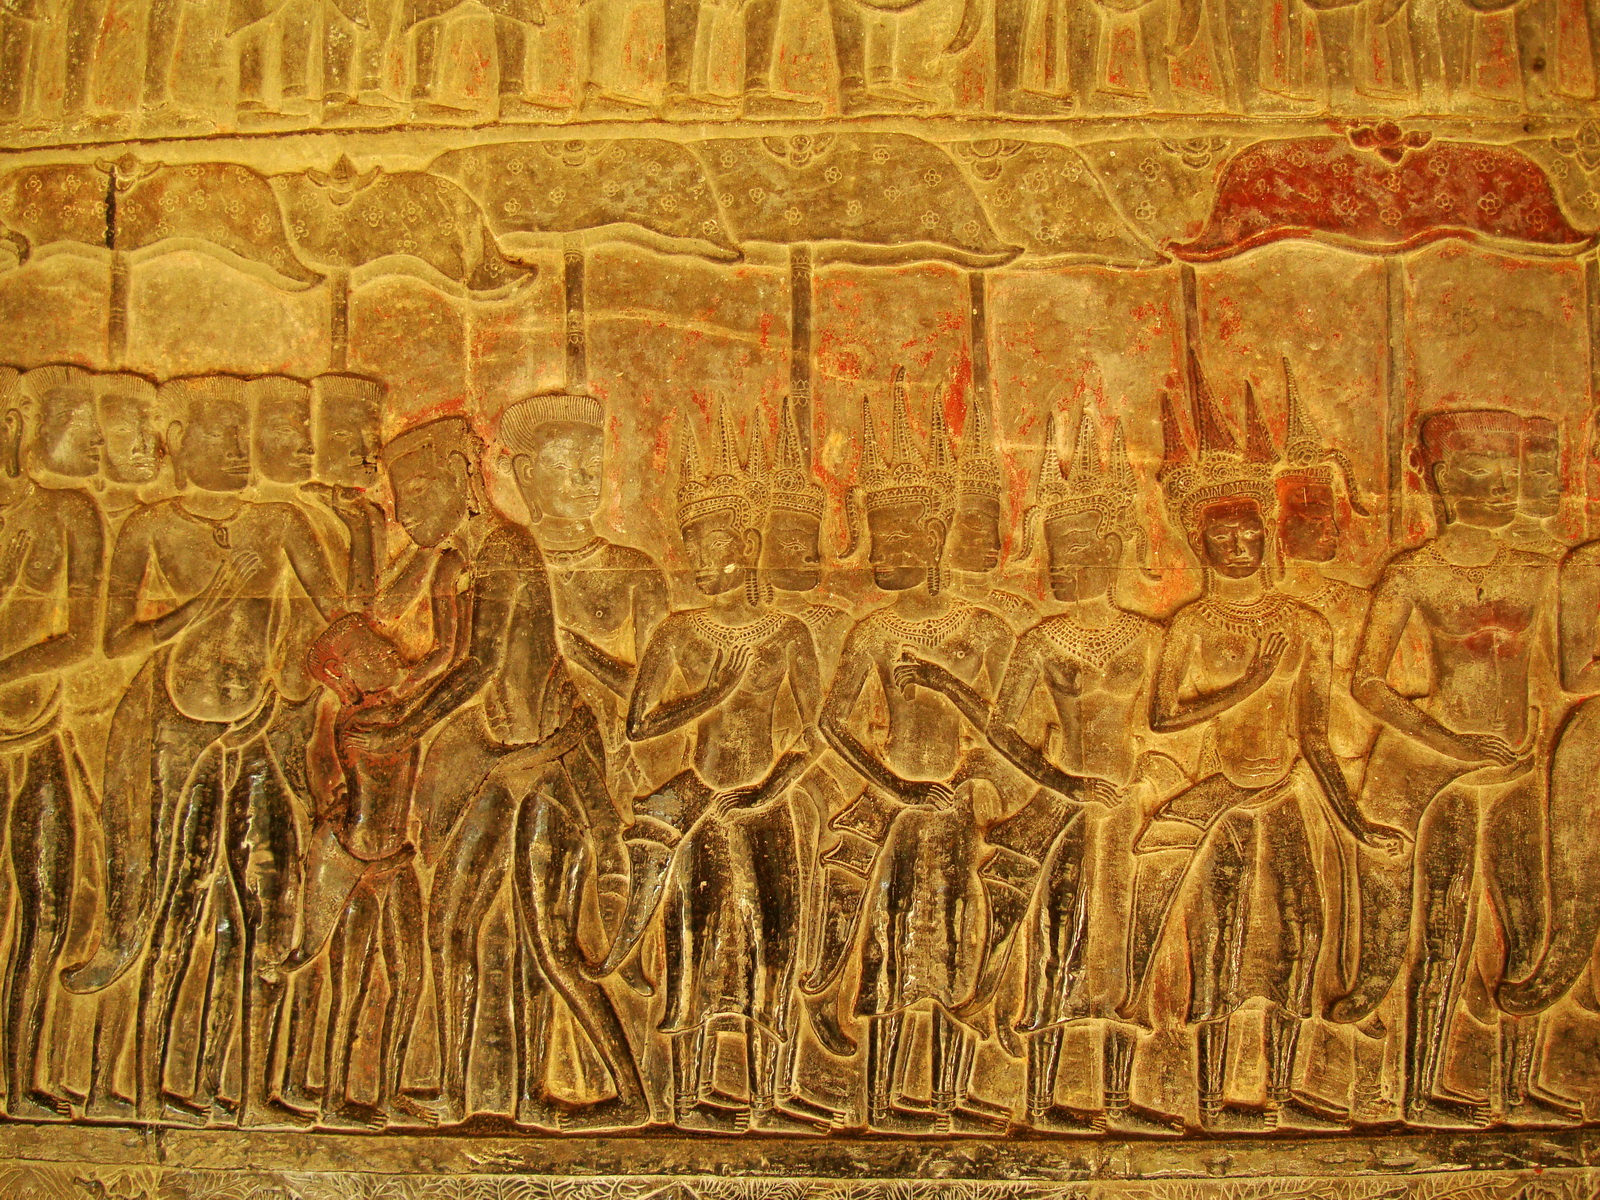 Angkor Wat Bas relief S Gallery E Wing Heavens and Hells 18